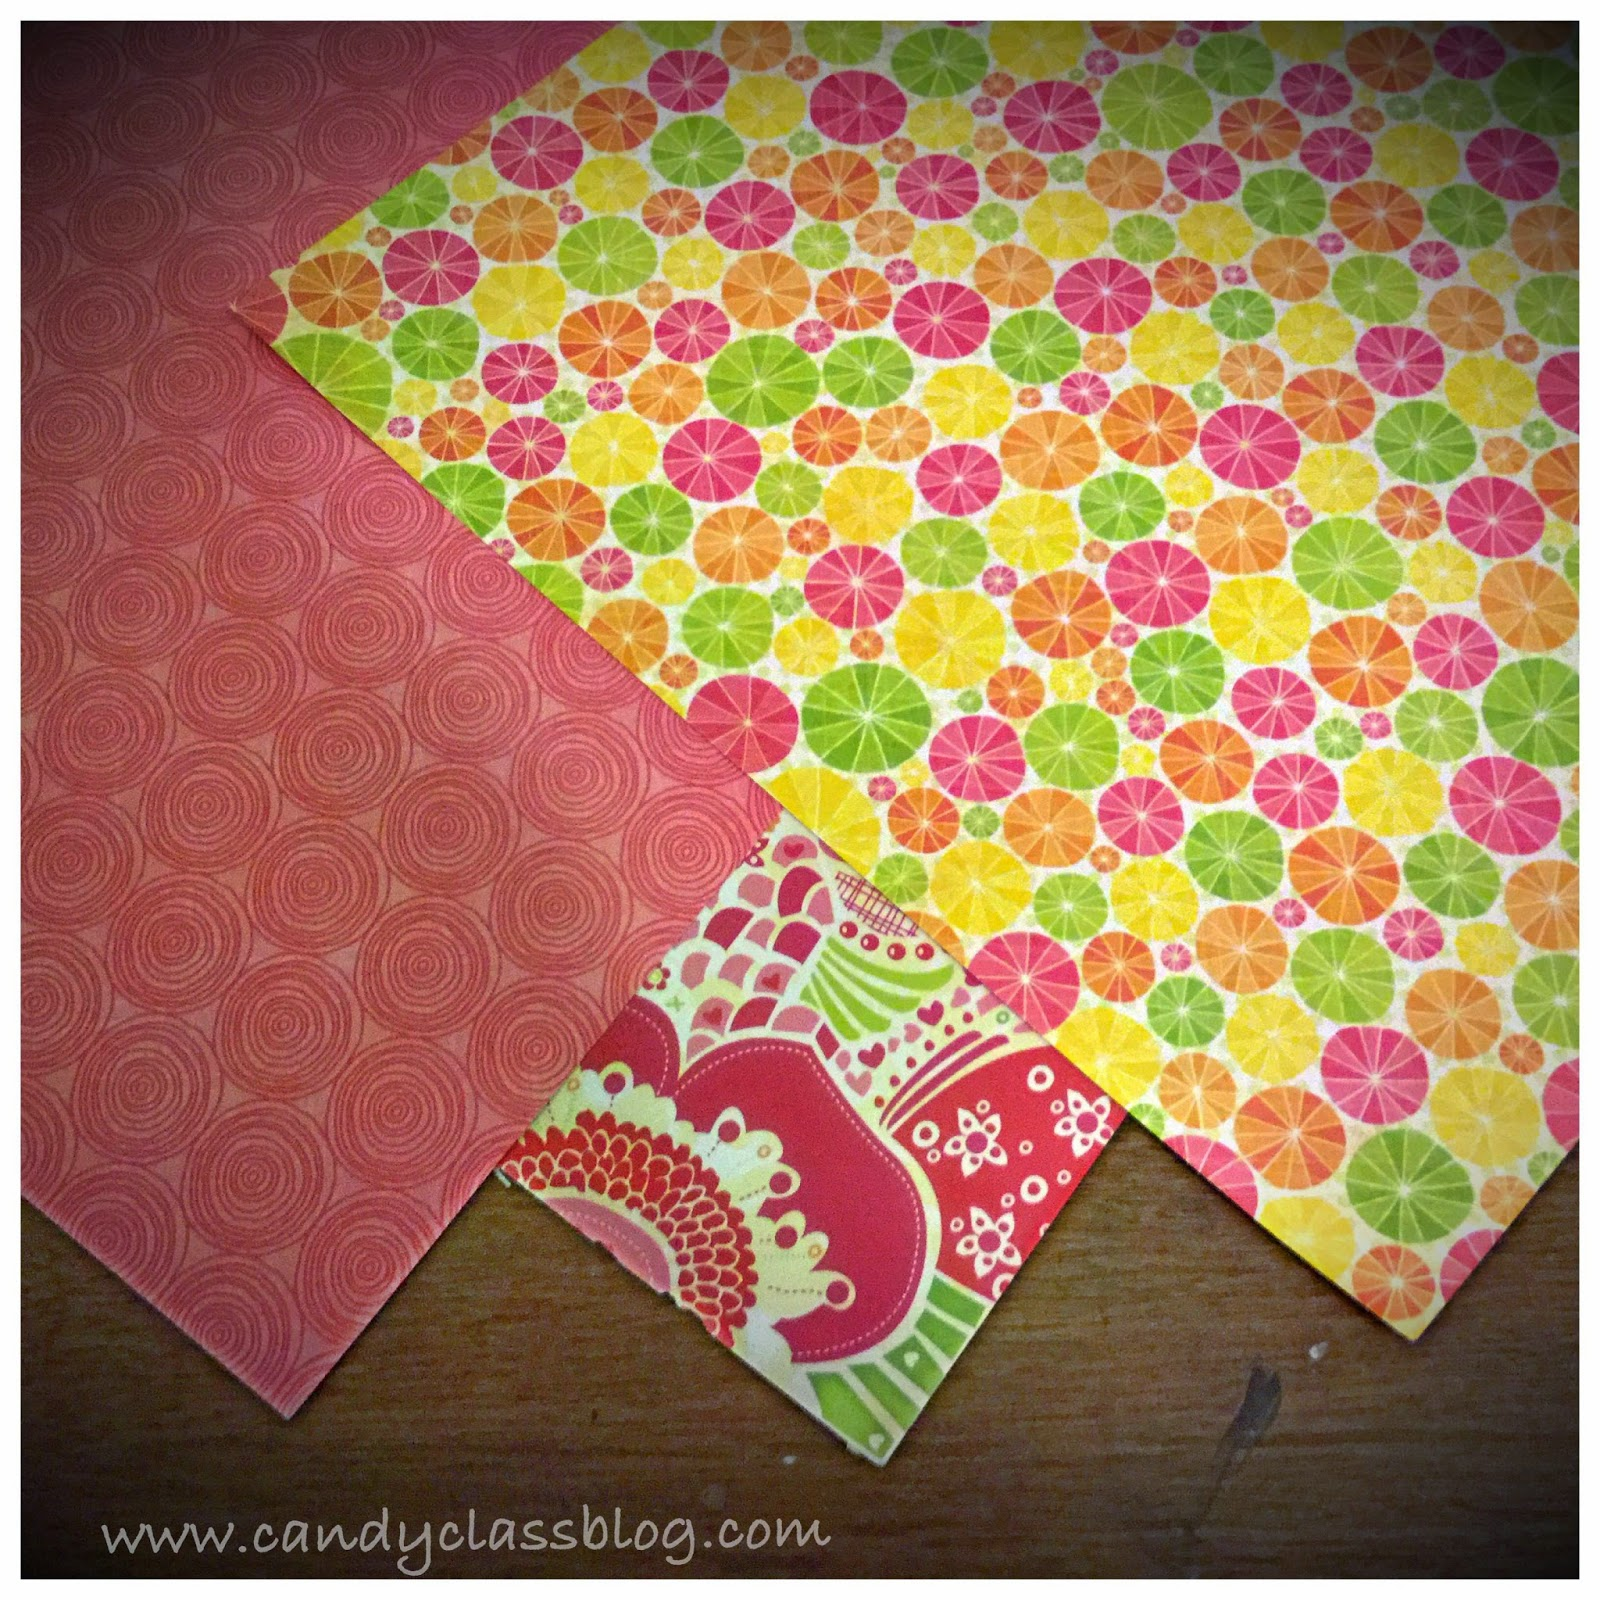 How to design scrapbook using colored paper - Combine Some Fun Bright Paper With Sight Words And You Have An Engaging Reading Center Or Learning Activity After All Children Need Lots Of Opportunity